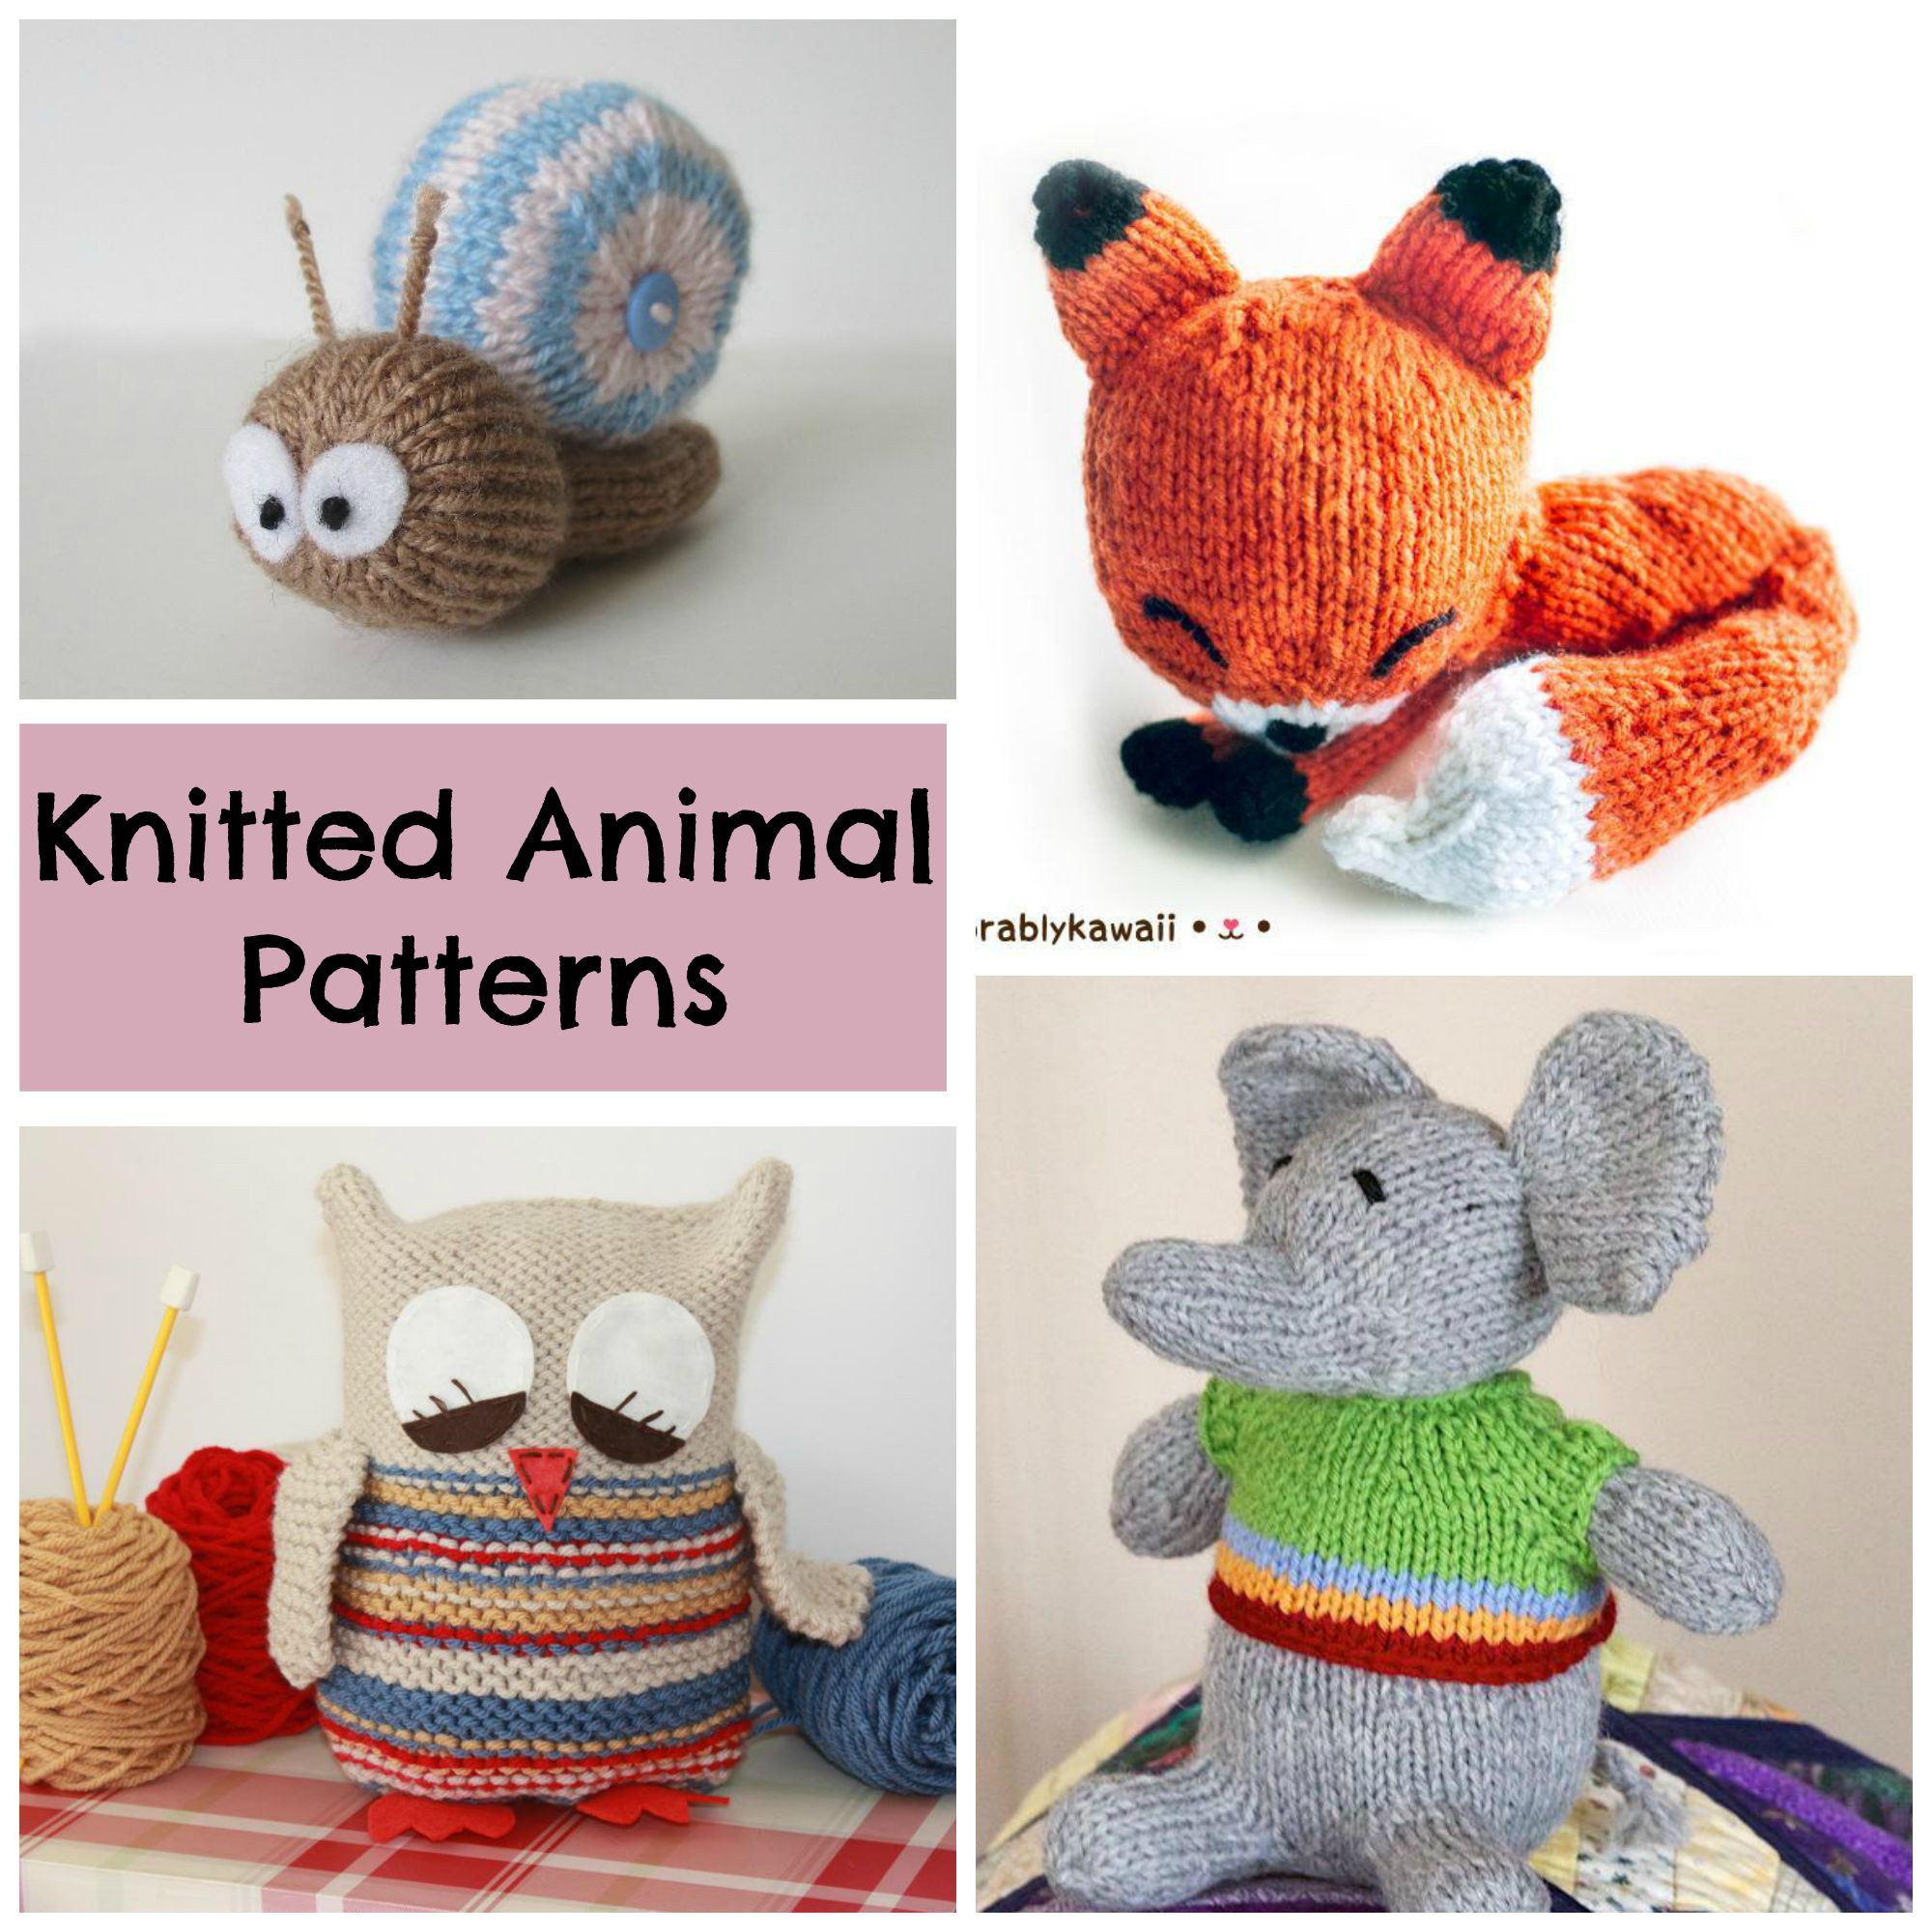 13 Unusual Knitting Patterns You Never Saw ing